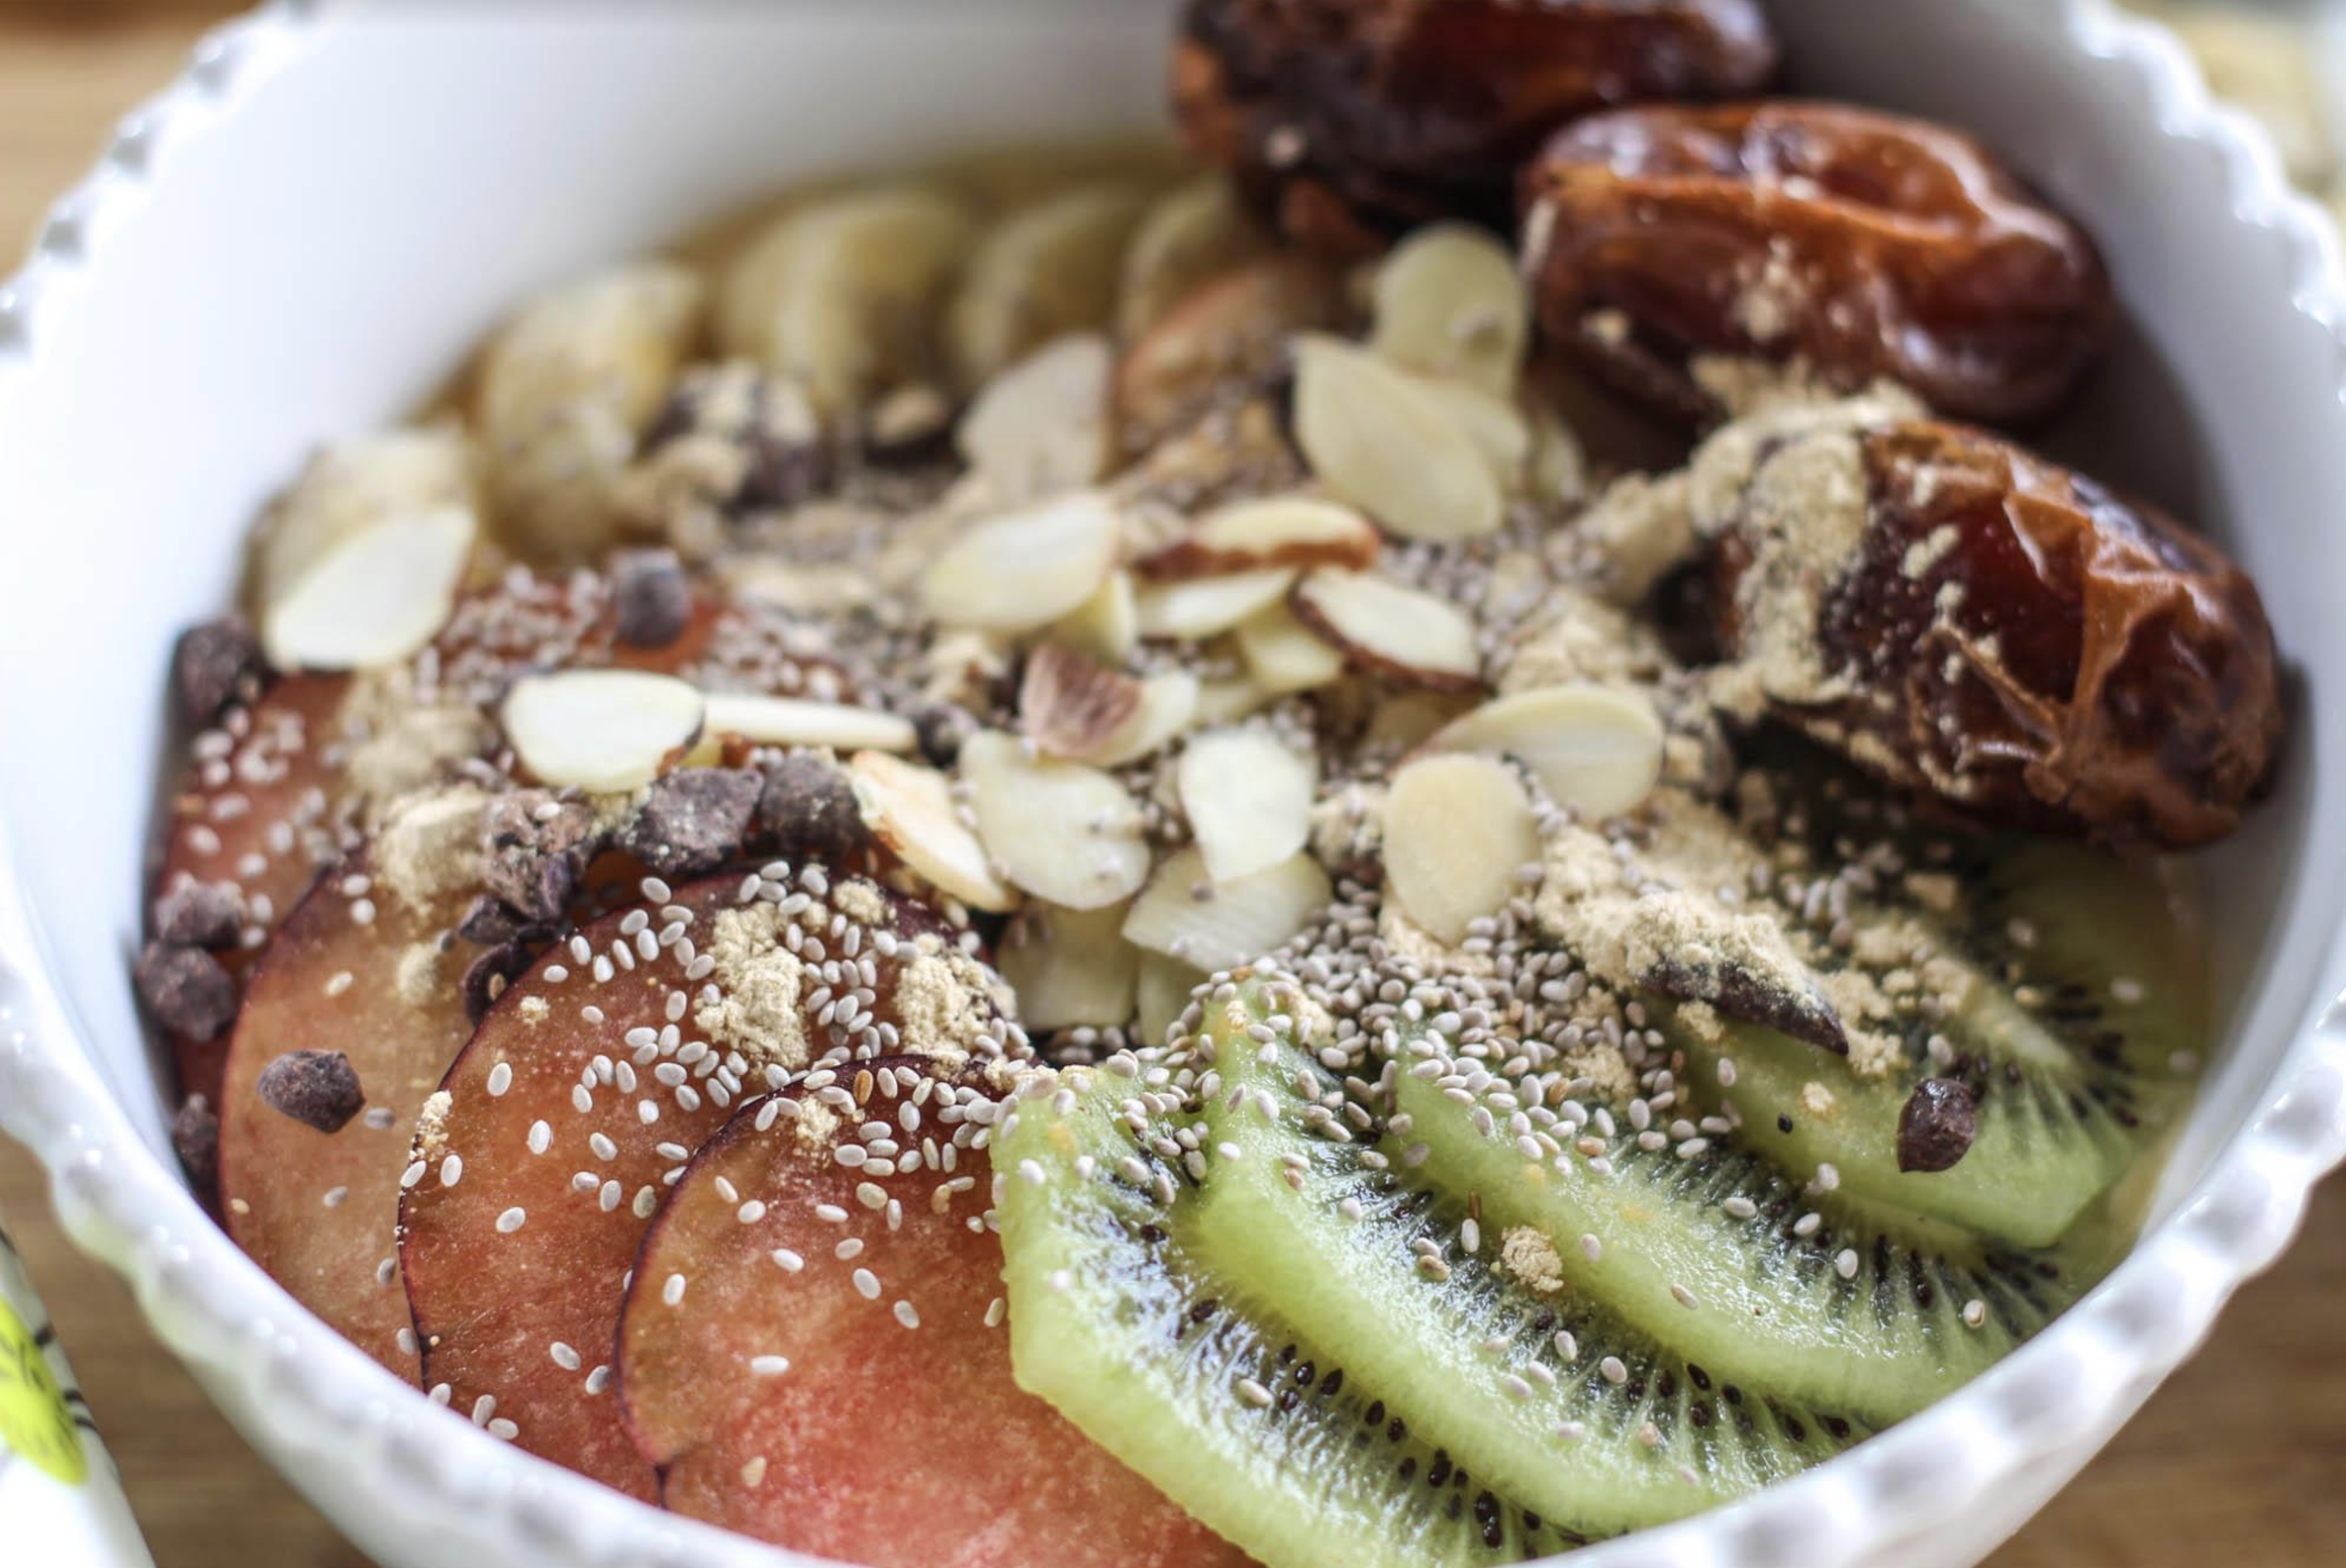 Pumpkin Yogurt Bowl with Fruit, Nuts & Grains